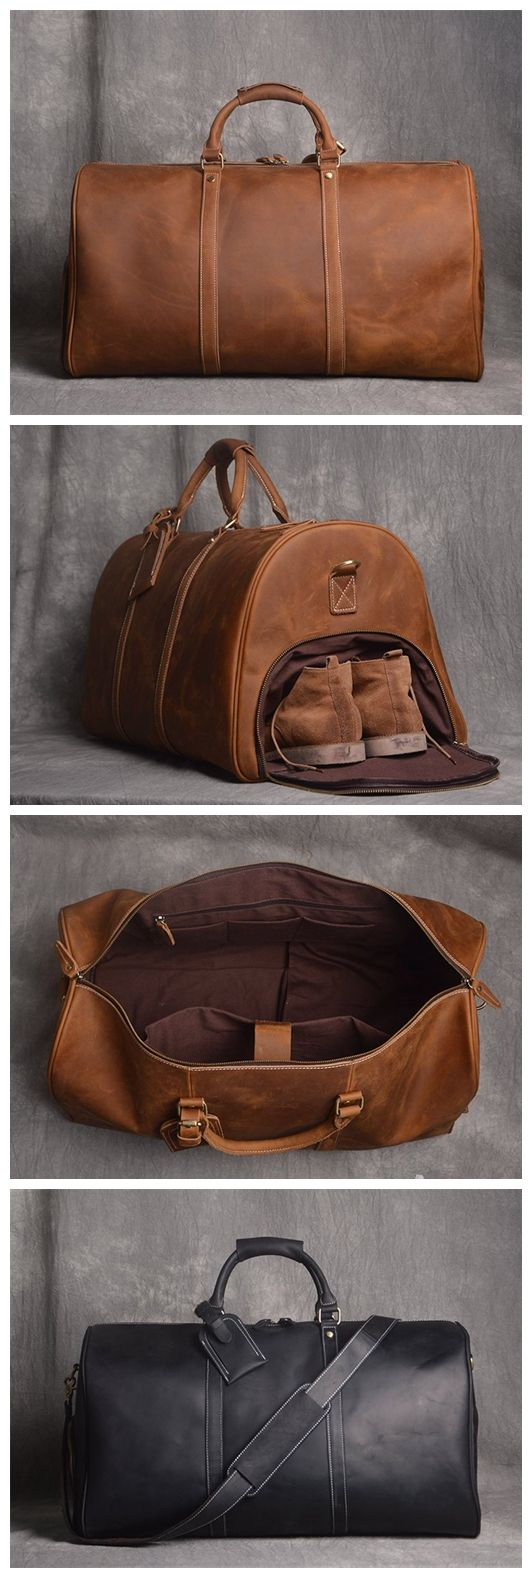 Photo of Full Grain Leather Duffle Bag with shoe Compartment,Personalized Leather Travel Weekend Bag,Wedding Gift for Groomsman QT002 – Brown / L